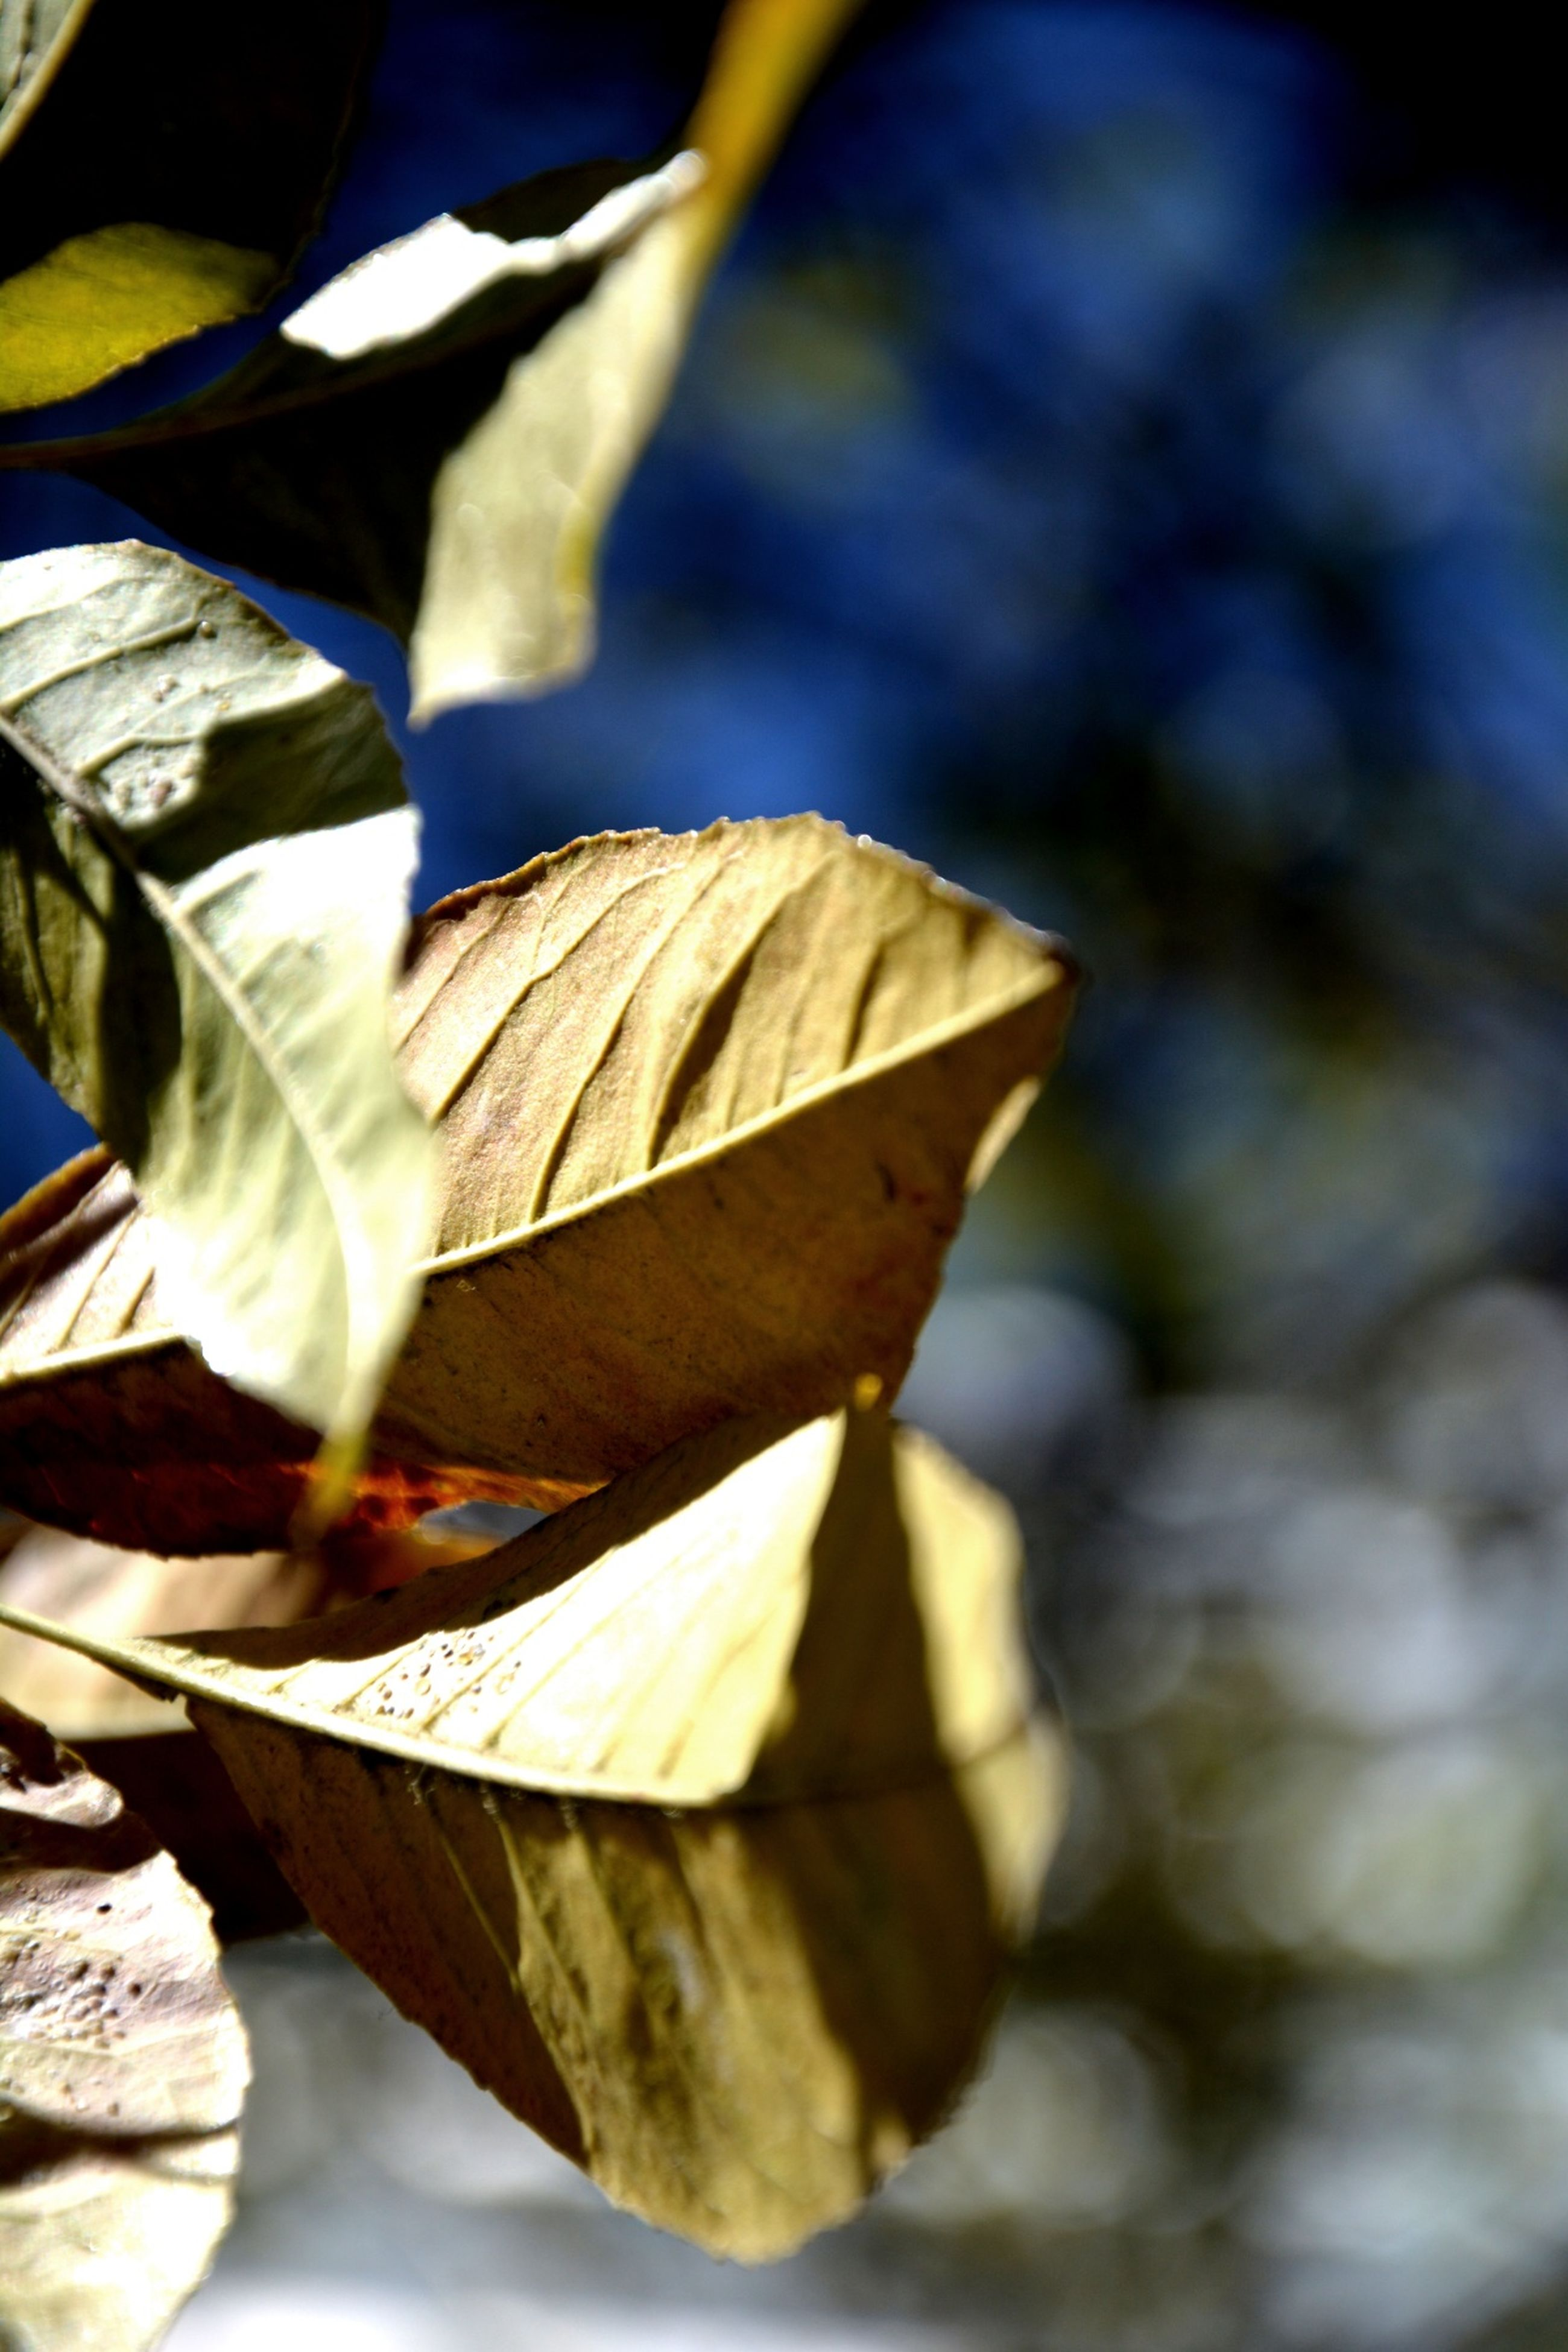 leaf, close-up, leaf vein, focus on foreground, dry, autumn, leaves, season, natural pattern, nature, yellow, fragility, selective focus, change, day, sunlight, outdoors, no people, maple leaf, part of